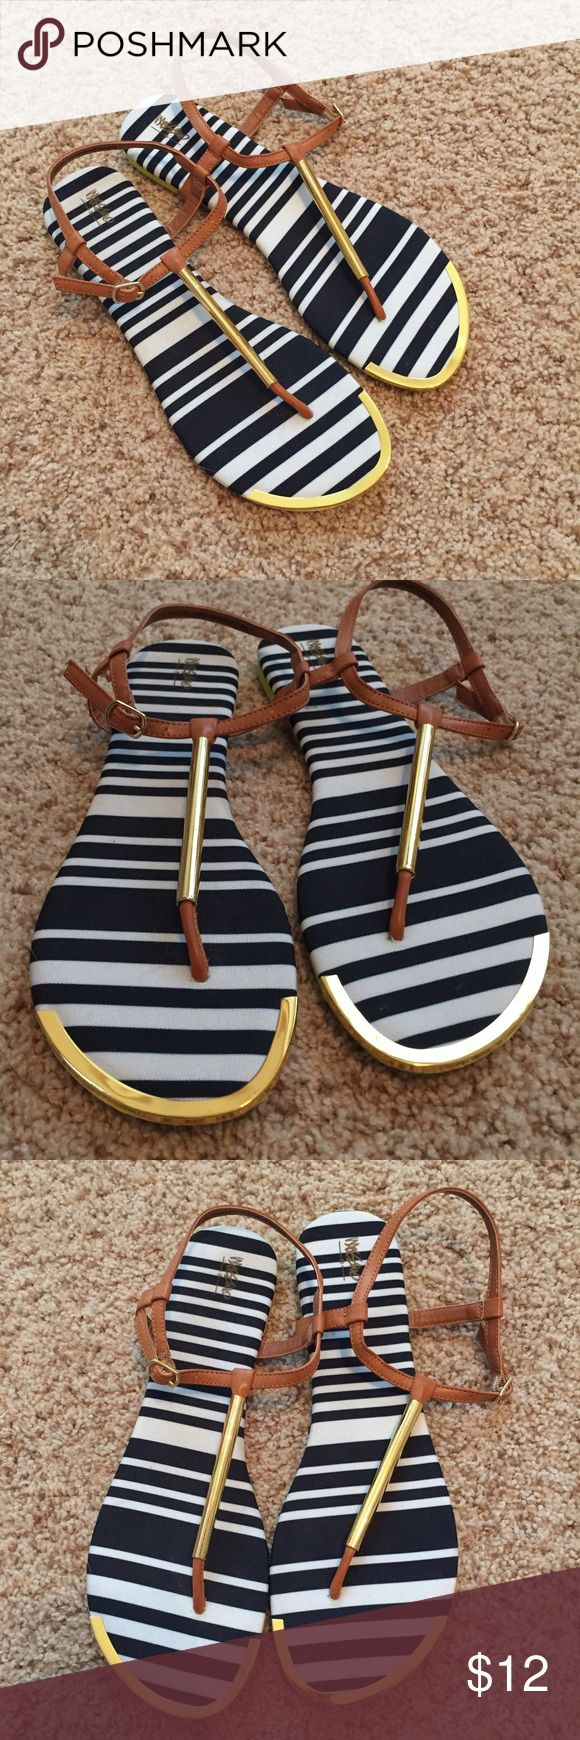 Mossimo Nautical & Neon Sandals Worn Once • True to Size • Navy and White Top • Brown Straps • Gold Details • Neon Yellow Bottom Mossimo Supply Co. Shoes Sandals